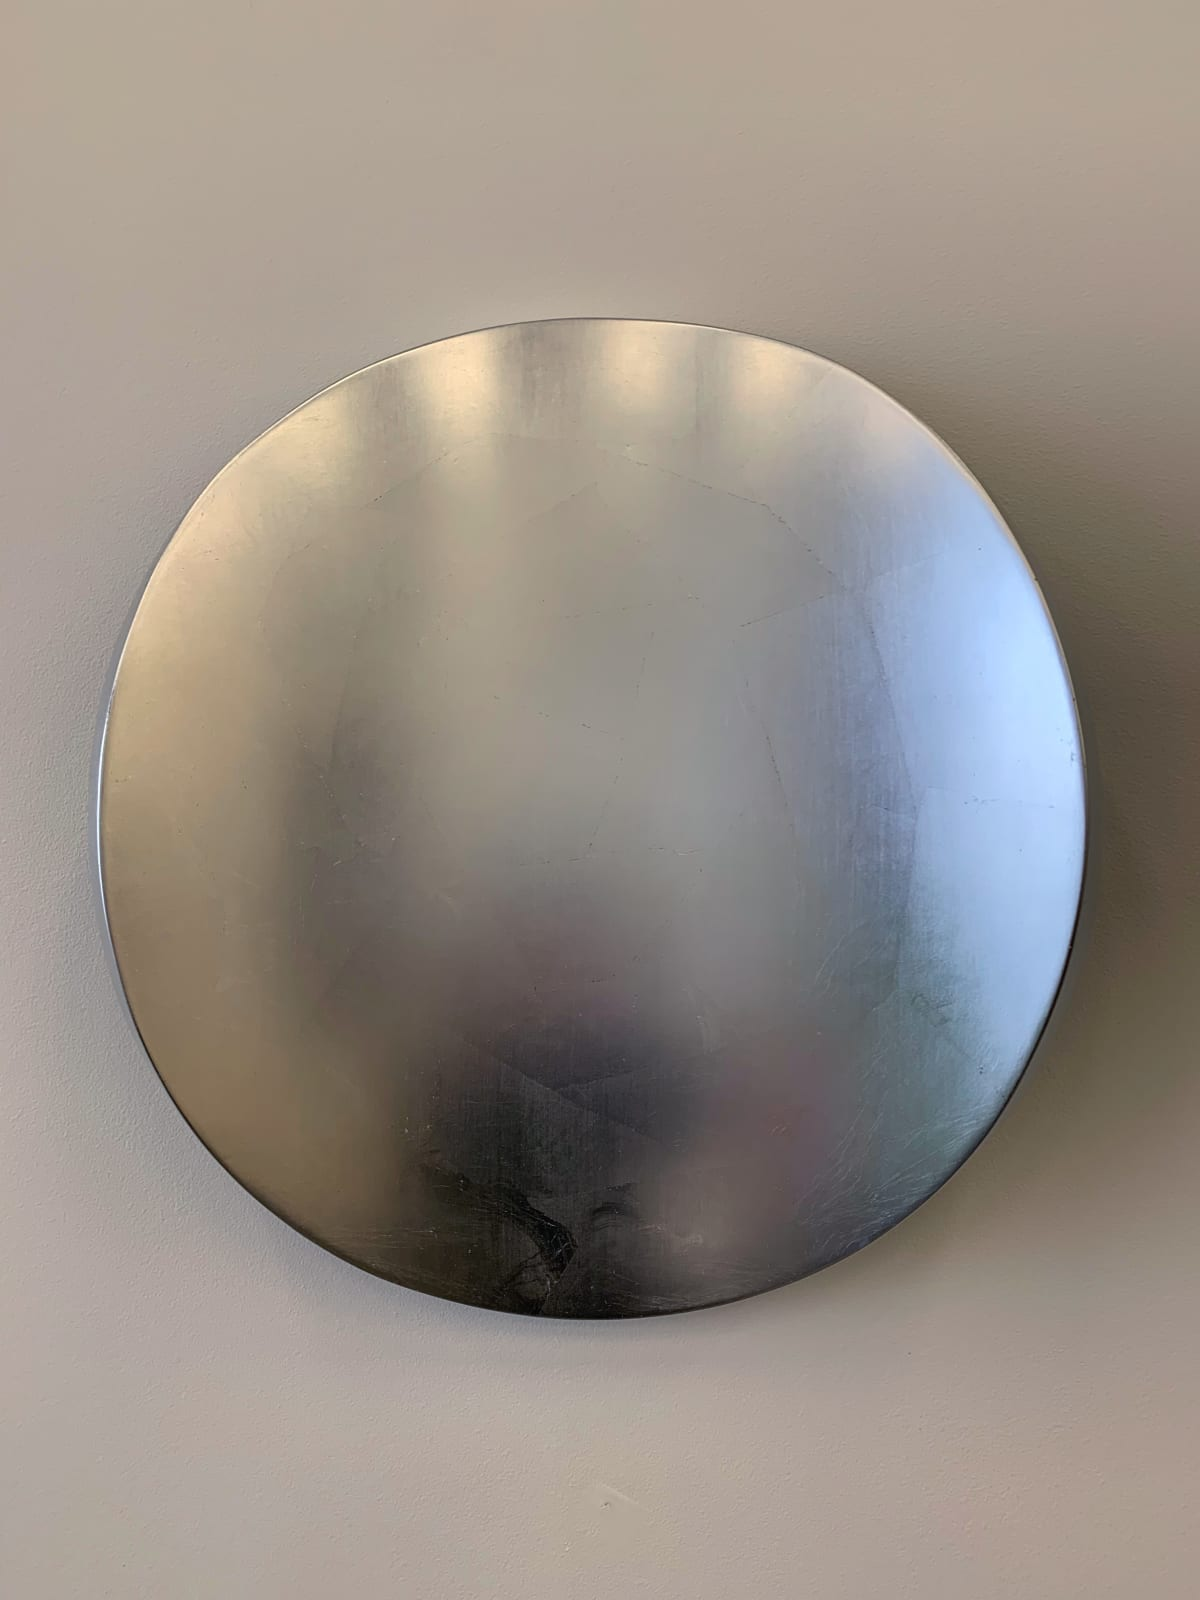 Marion Borgelt Lunar Warp: Moon No 3, 2019 Timber, dutch silver leaf, polyurethane, mirror acrylic 50 cm diameter x 11 cm deep